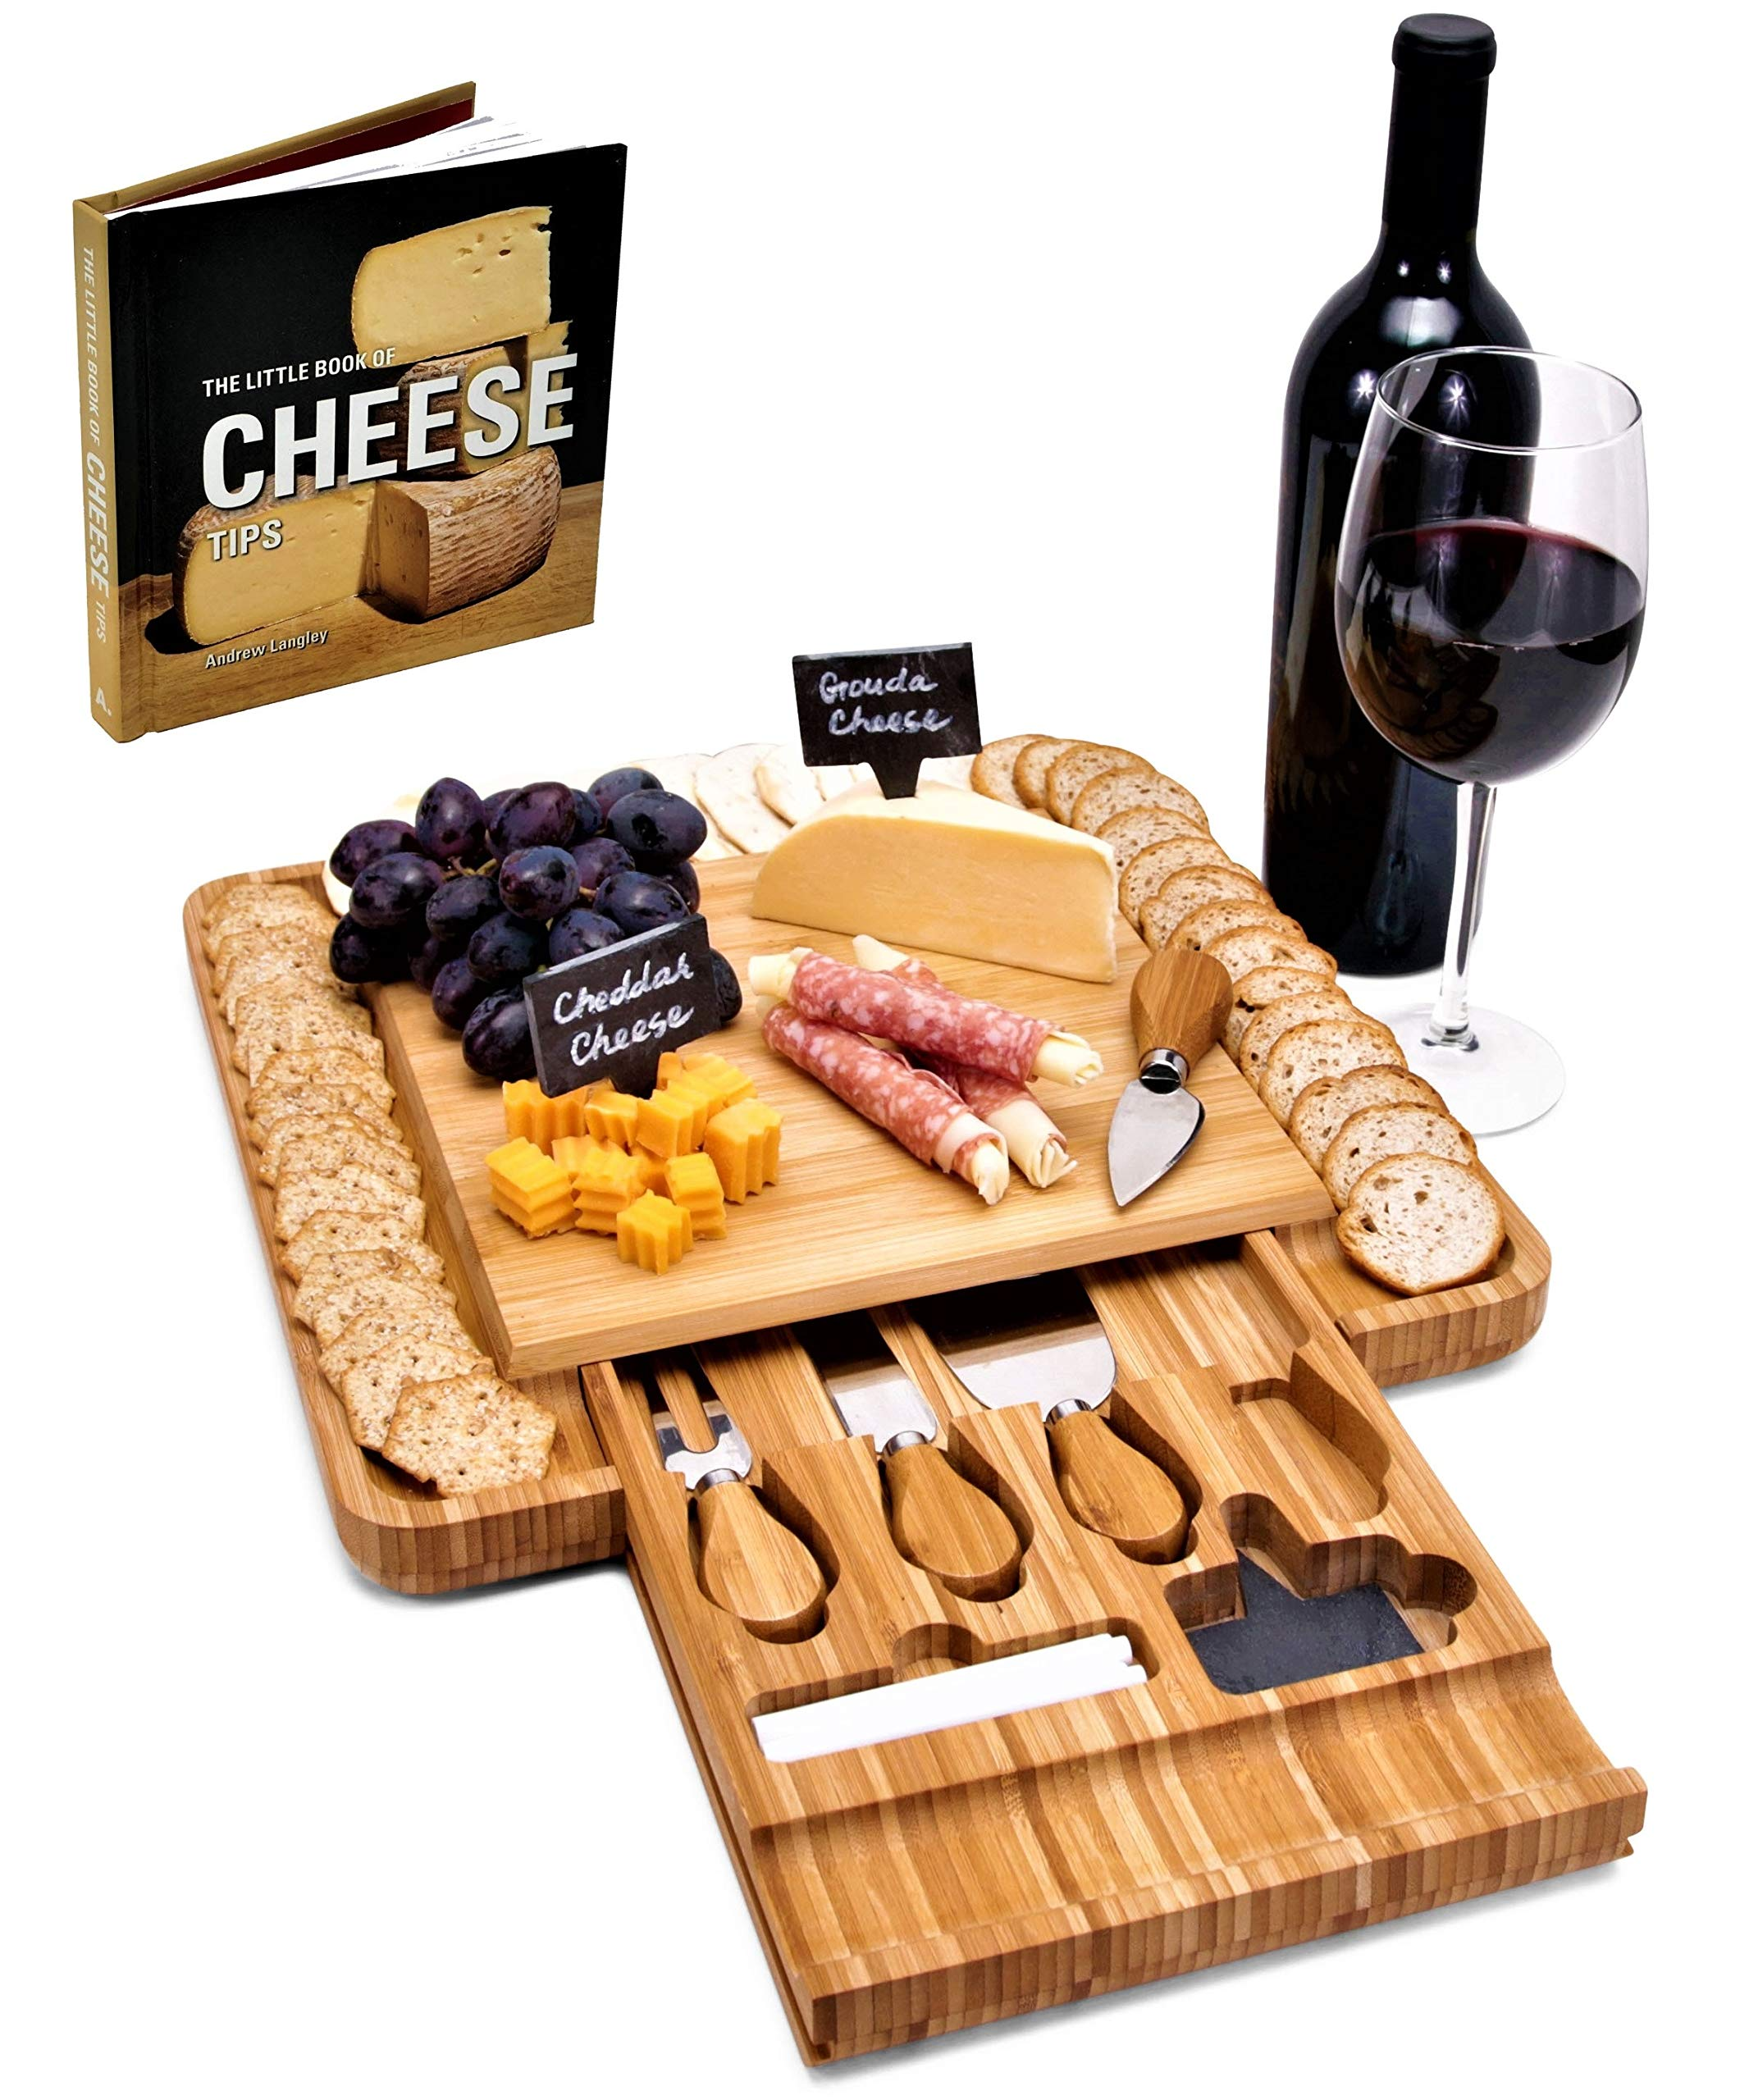 North Shore Cucina Large Bamboo Wood Cheese Board and Knife Set Serving Tray w/Cutlery | Charcuterie Board + Cheese Book | Cracker, Cheese & Meat Platter Cutting Board Perfect House Warming Presents